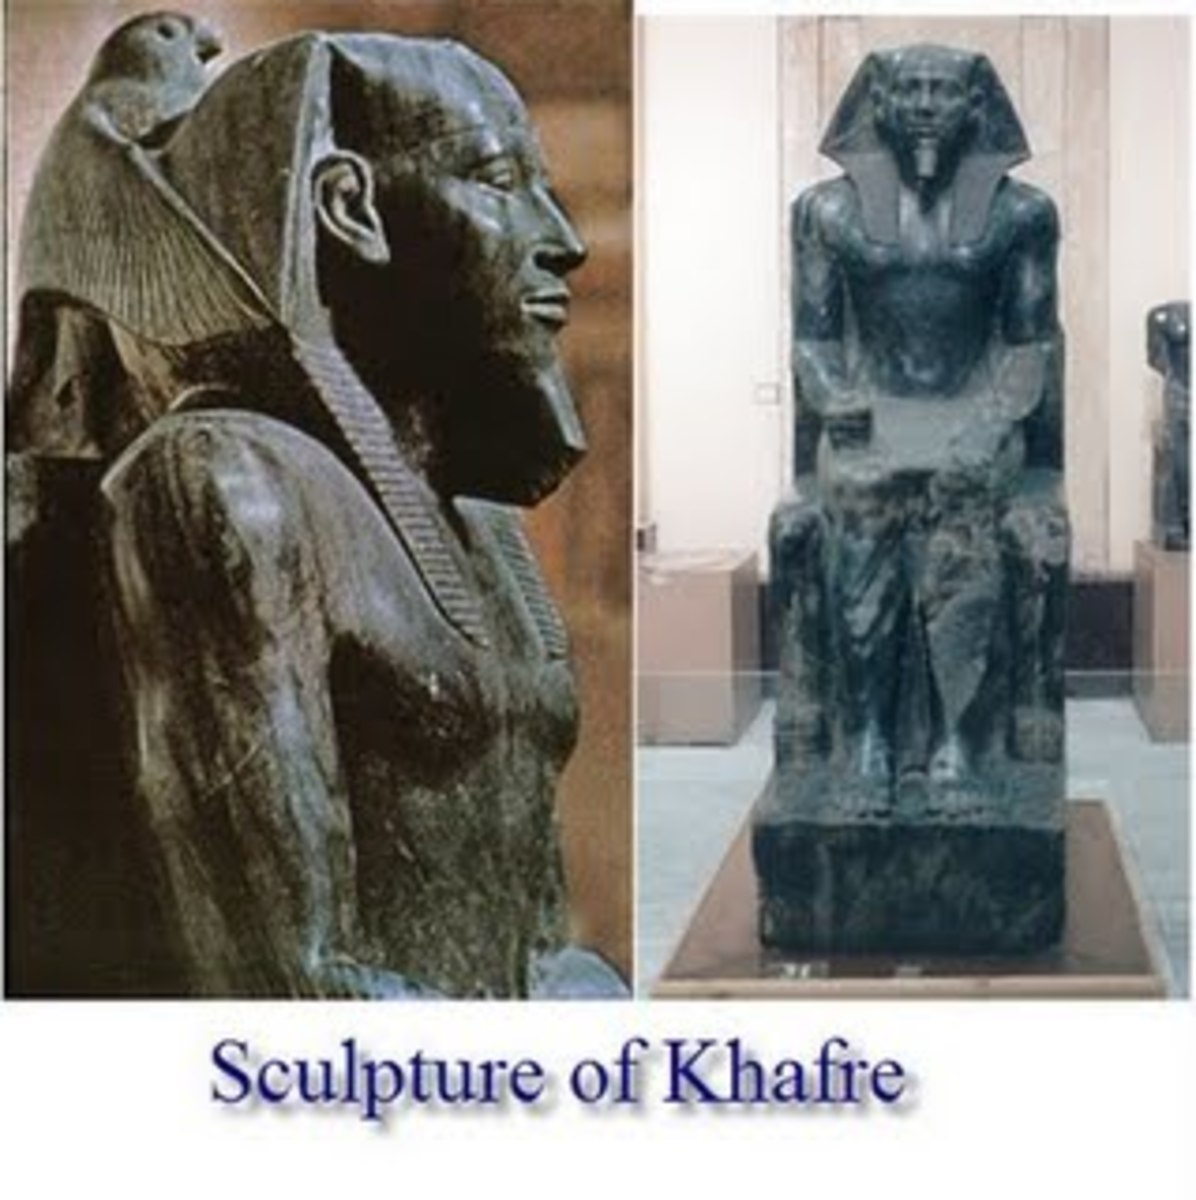 Pharaoh Khafre in black diorite with white veins, his head embraced by the hawk god Horus. It has a concentrated force and presence unequalled over 5,000 years. #16 photo